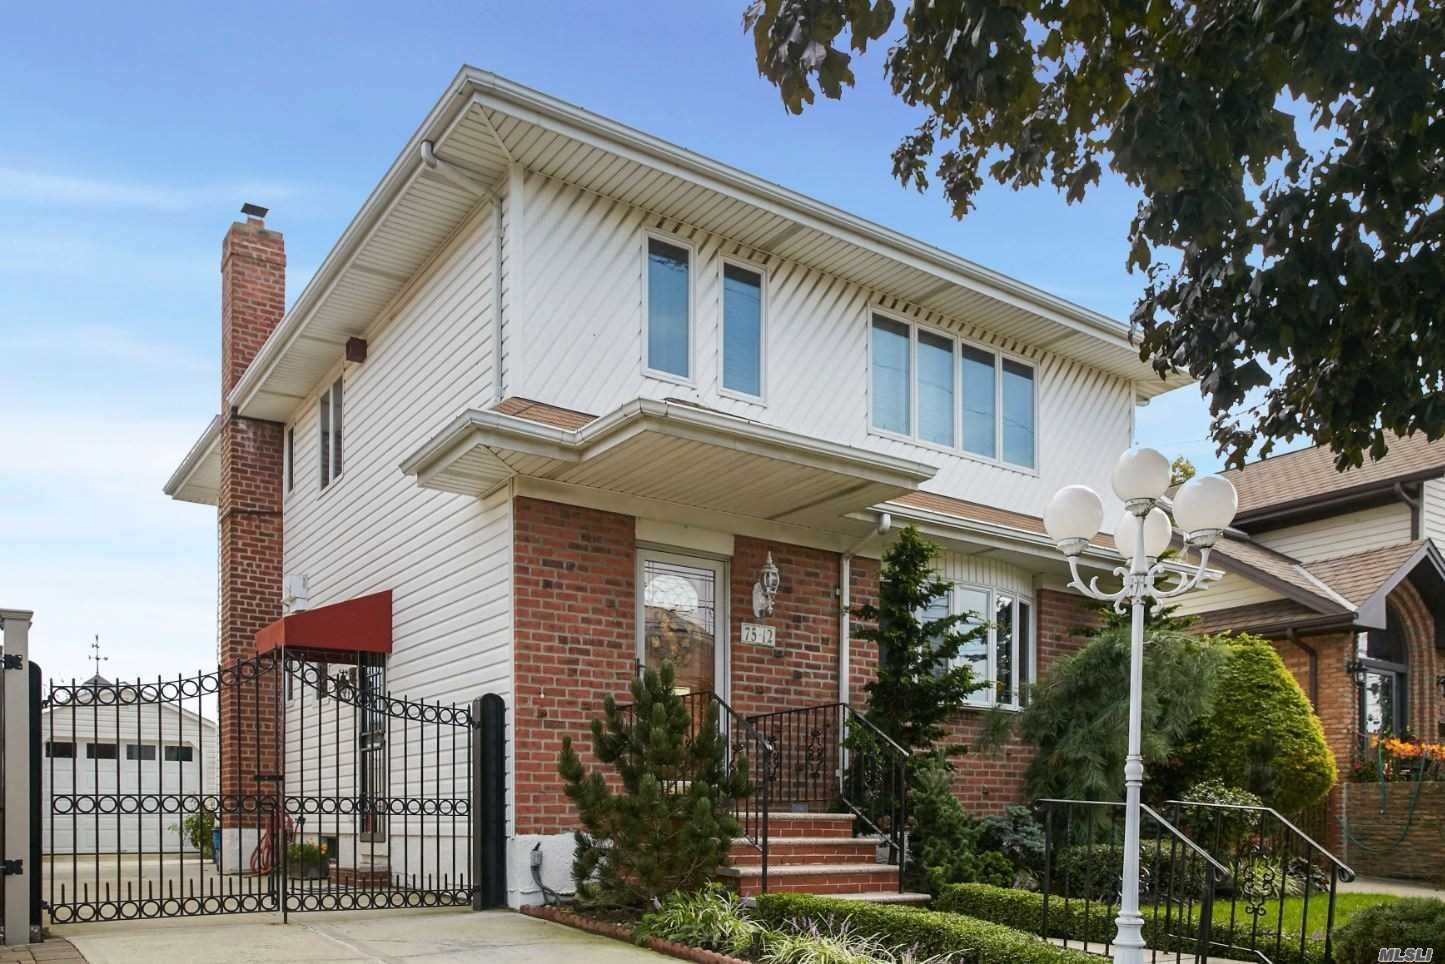 Beautiful 1 Family Detached Home On An Oversized Lot (40X95) In The Heart Of Midle Village Located On A Desirable Block (Penelope Ave). Modern Eat-In-Kitchen W/ Sub Zero Refrigerator, Formal Diningroom, Spacious Livingroom, 4 Bedrooms, Full Finished Basment, Garage, Private Driveway And Private Yard...